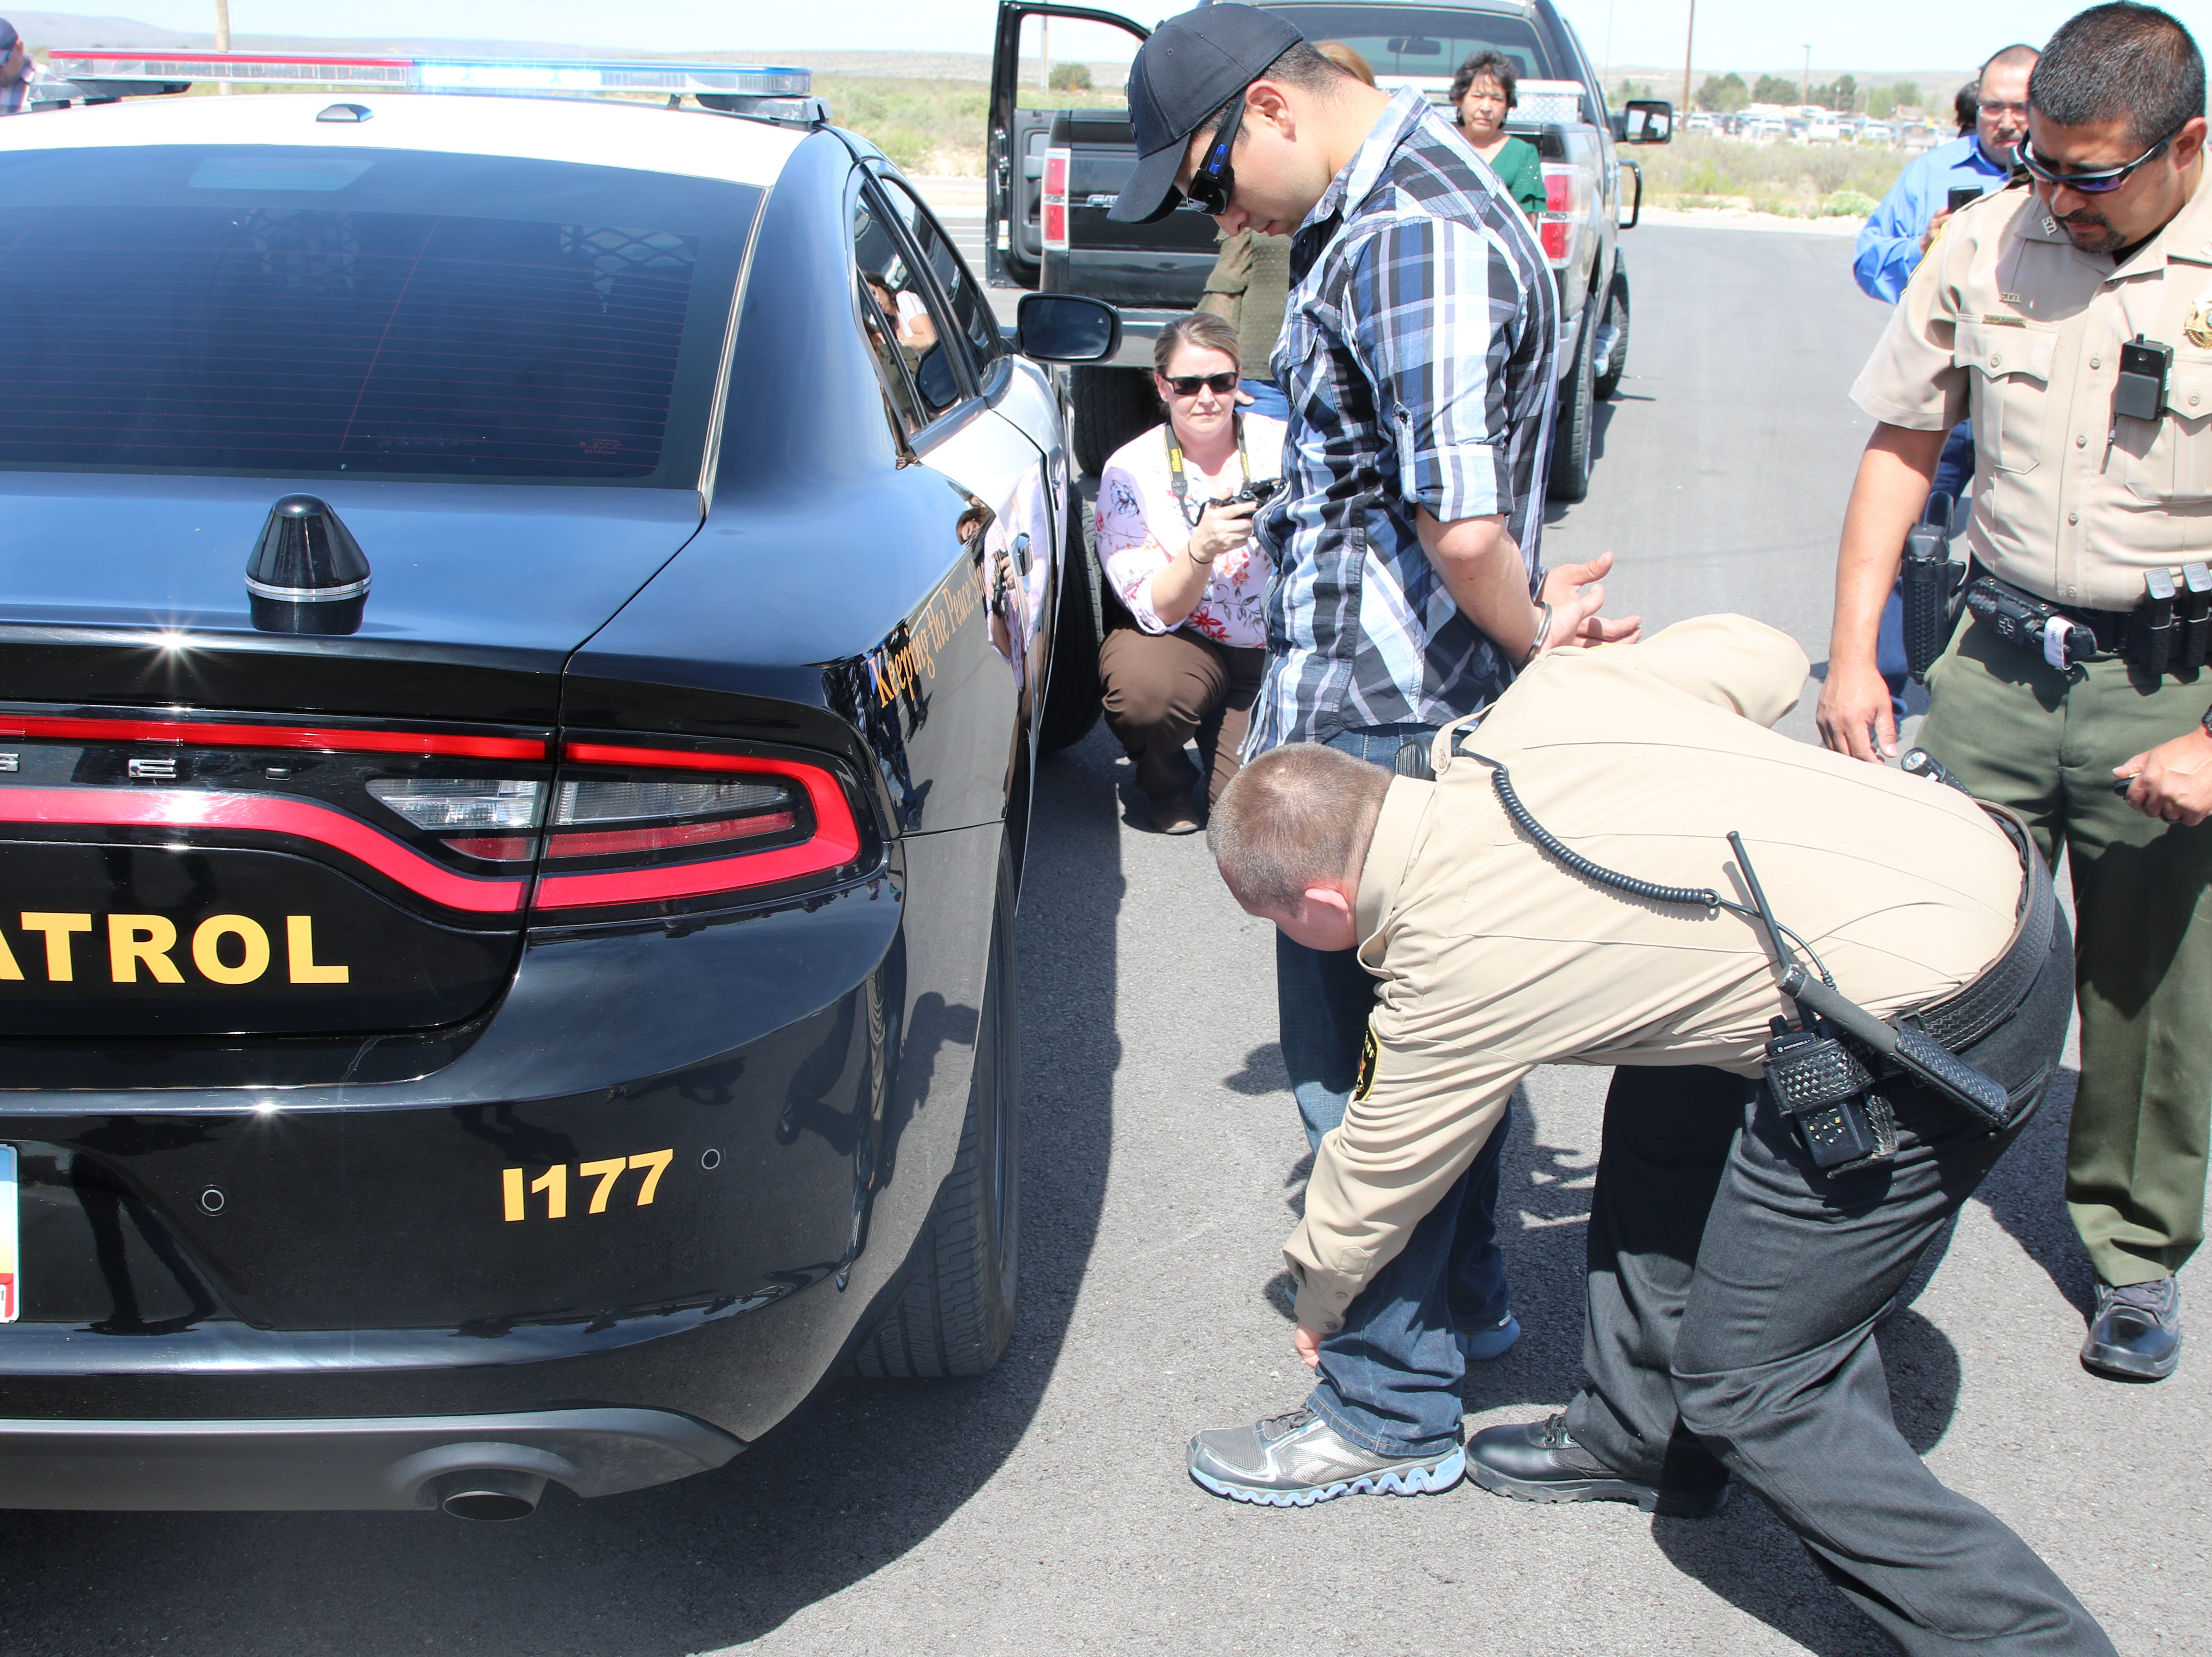 Honorary Eddy County Sheriff's deputy Roman Leos arrests Alexander Duchene with deputy Adrian Rodriguez looking on  April 15 at the Eddy County Sheriff's Office complex in Carlsbad. Leos received a birthday present from Eddy County Sheriff Mark Cage.